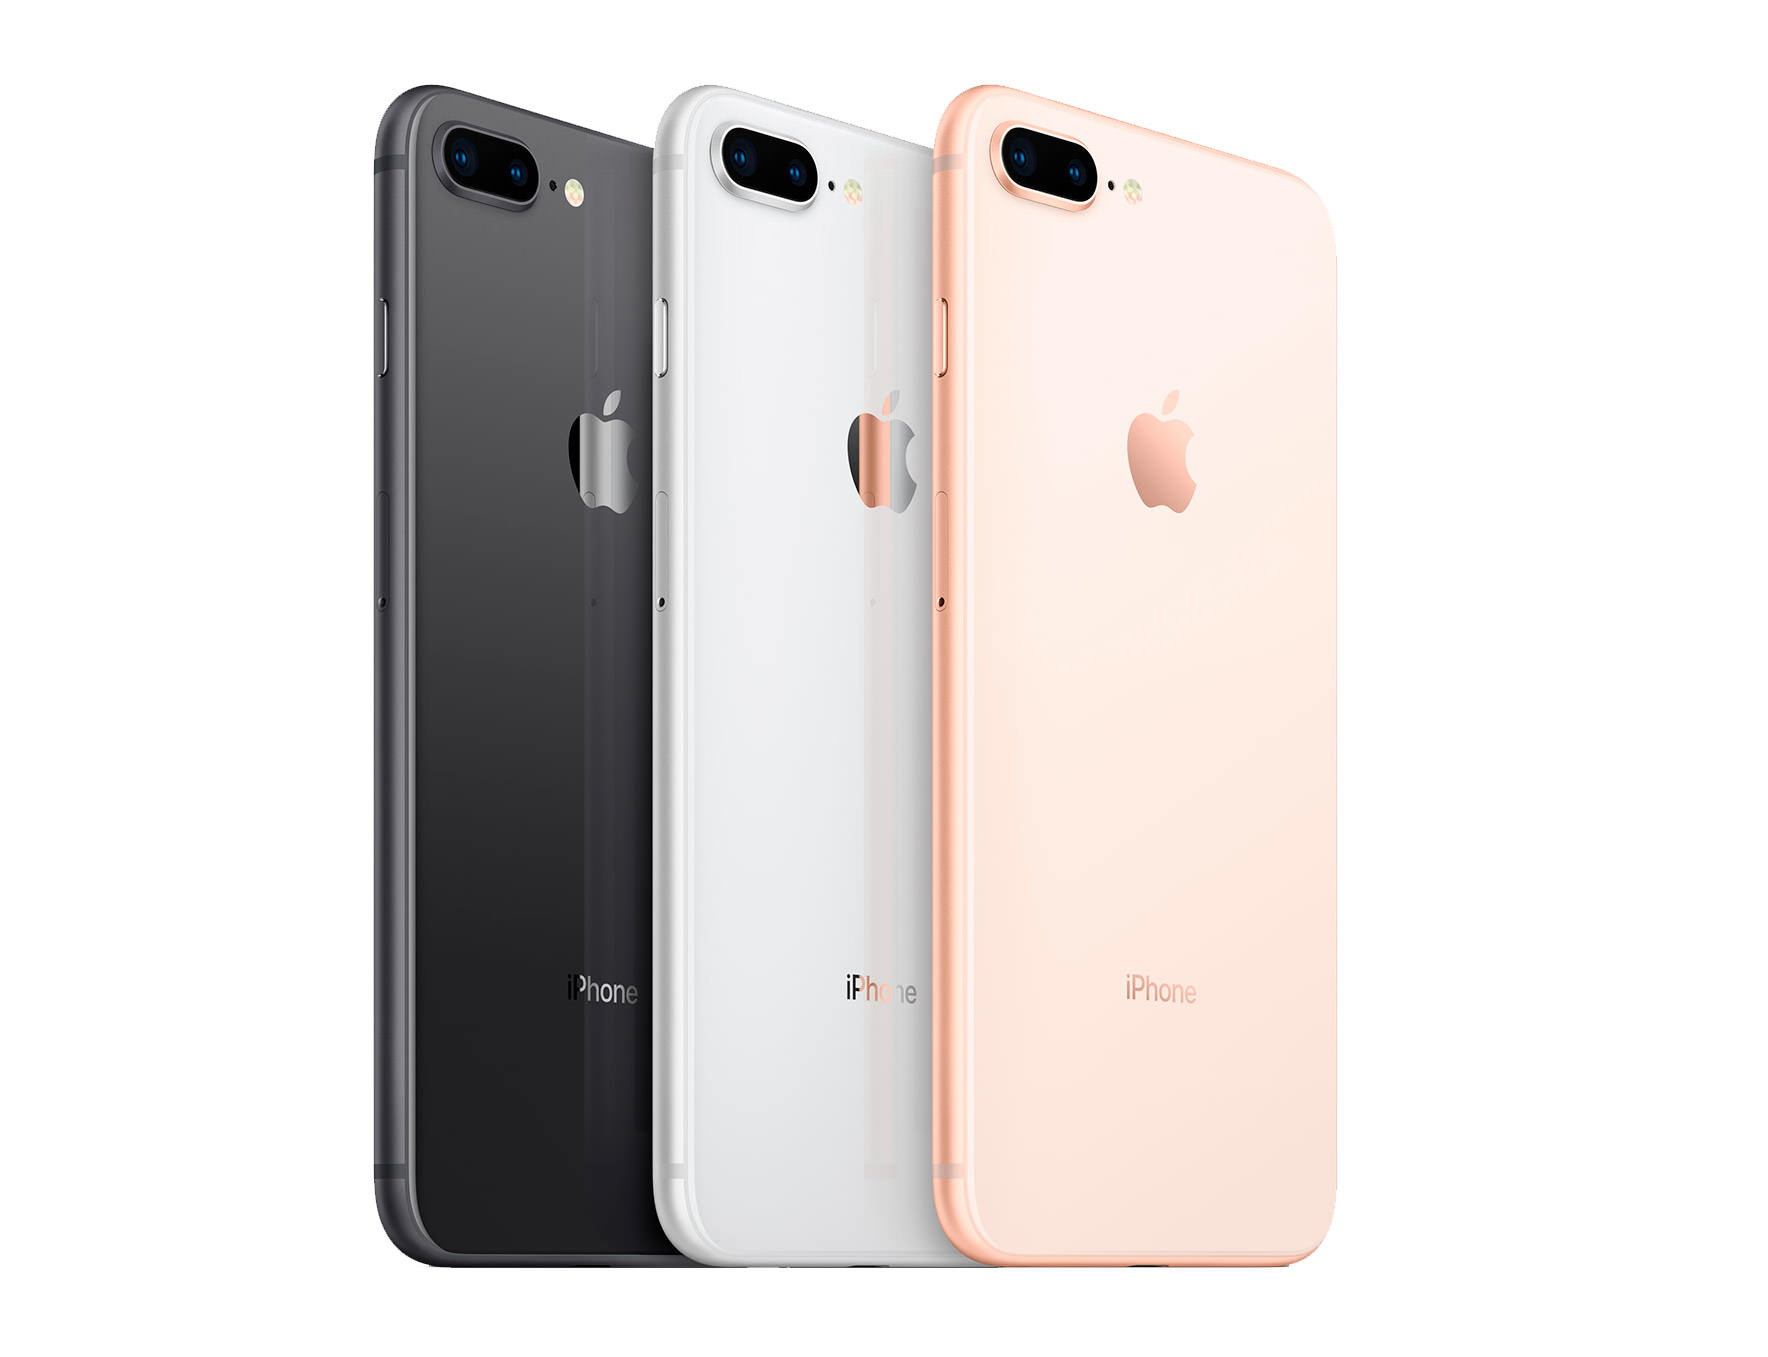 iphone 8 plus all colors